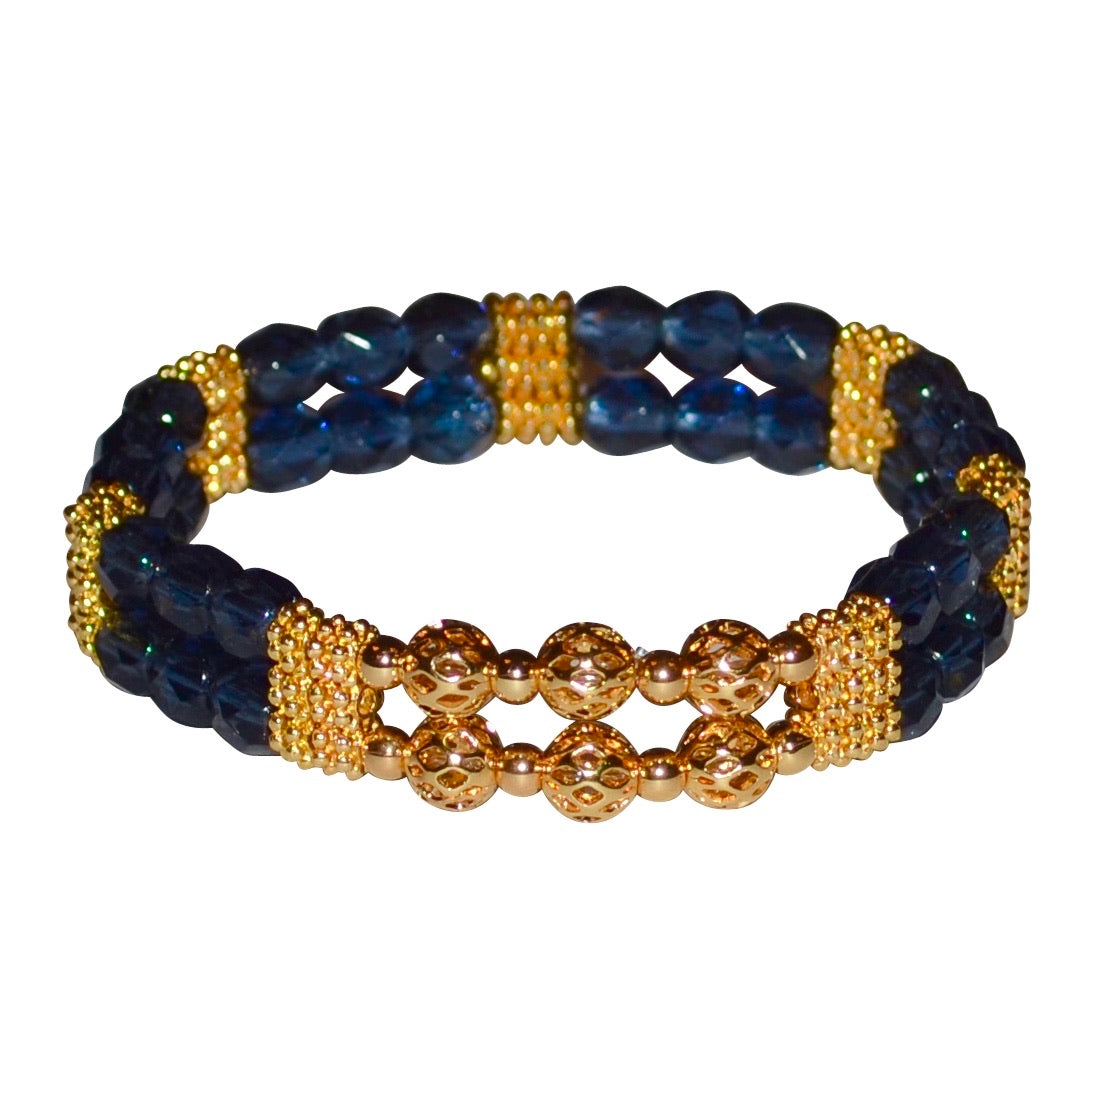 BIANCA BRACELET IN DARK BLUE